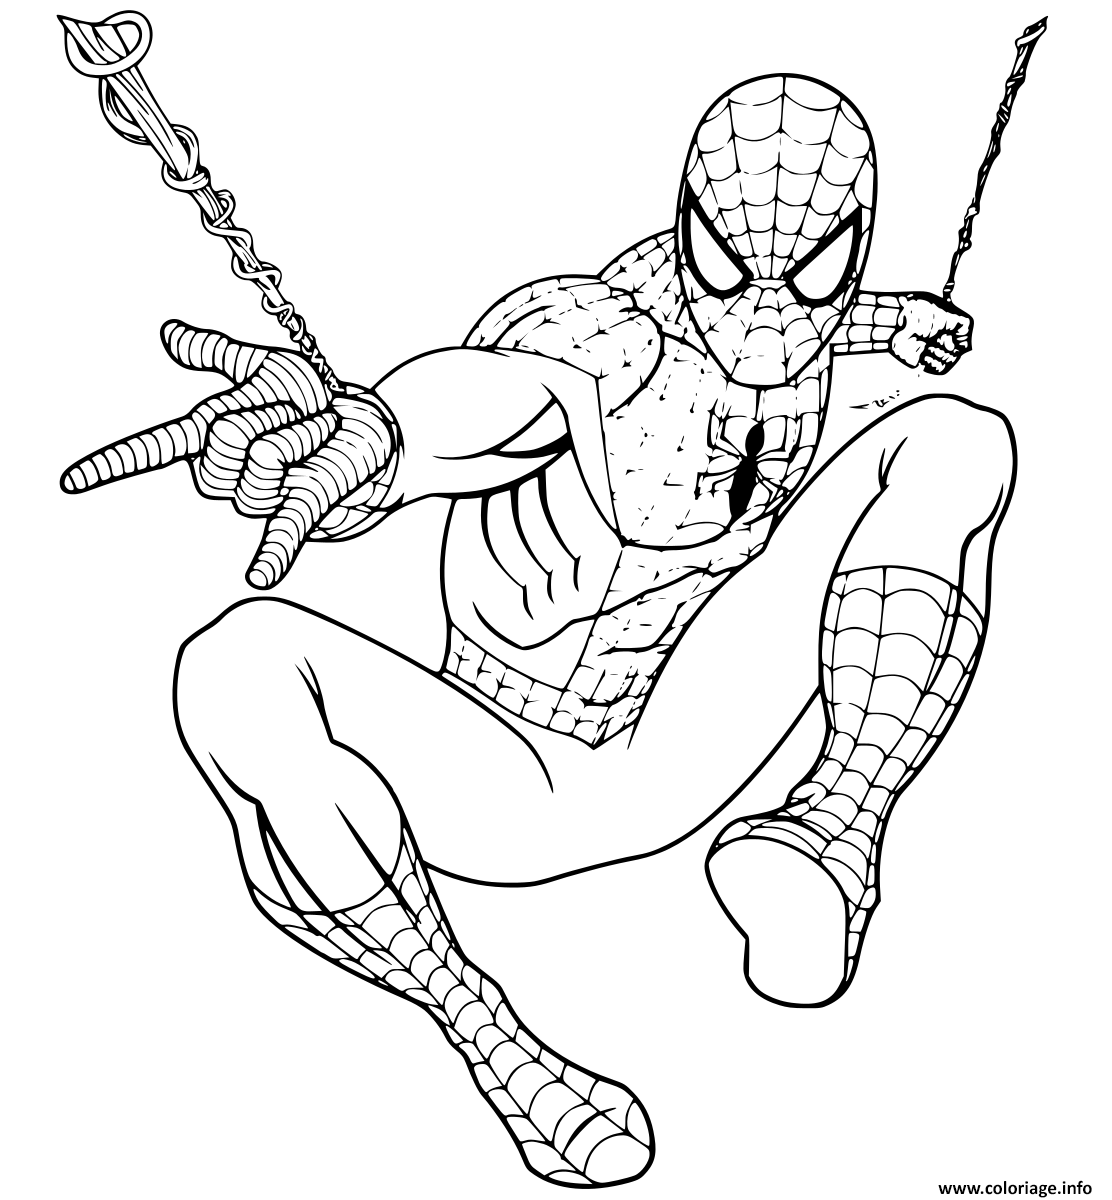 Coloriage Spiderman Returning To Marvel Universe Dessin à Imprimer